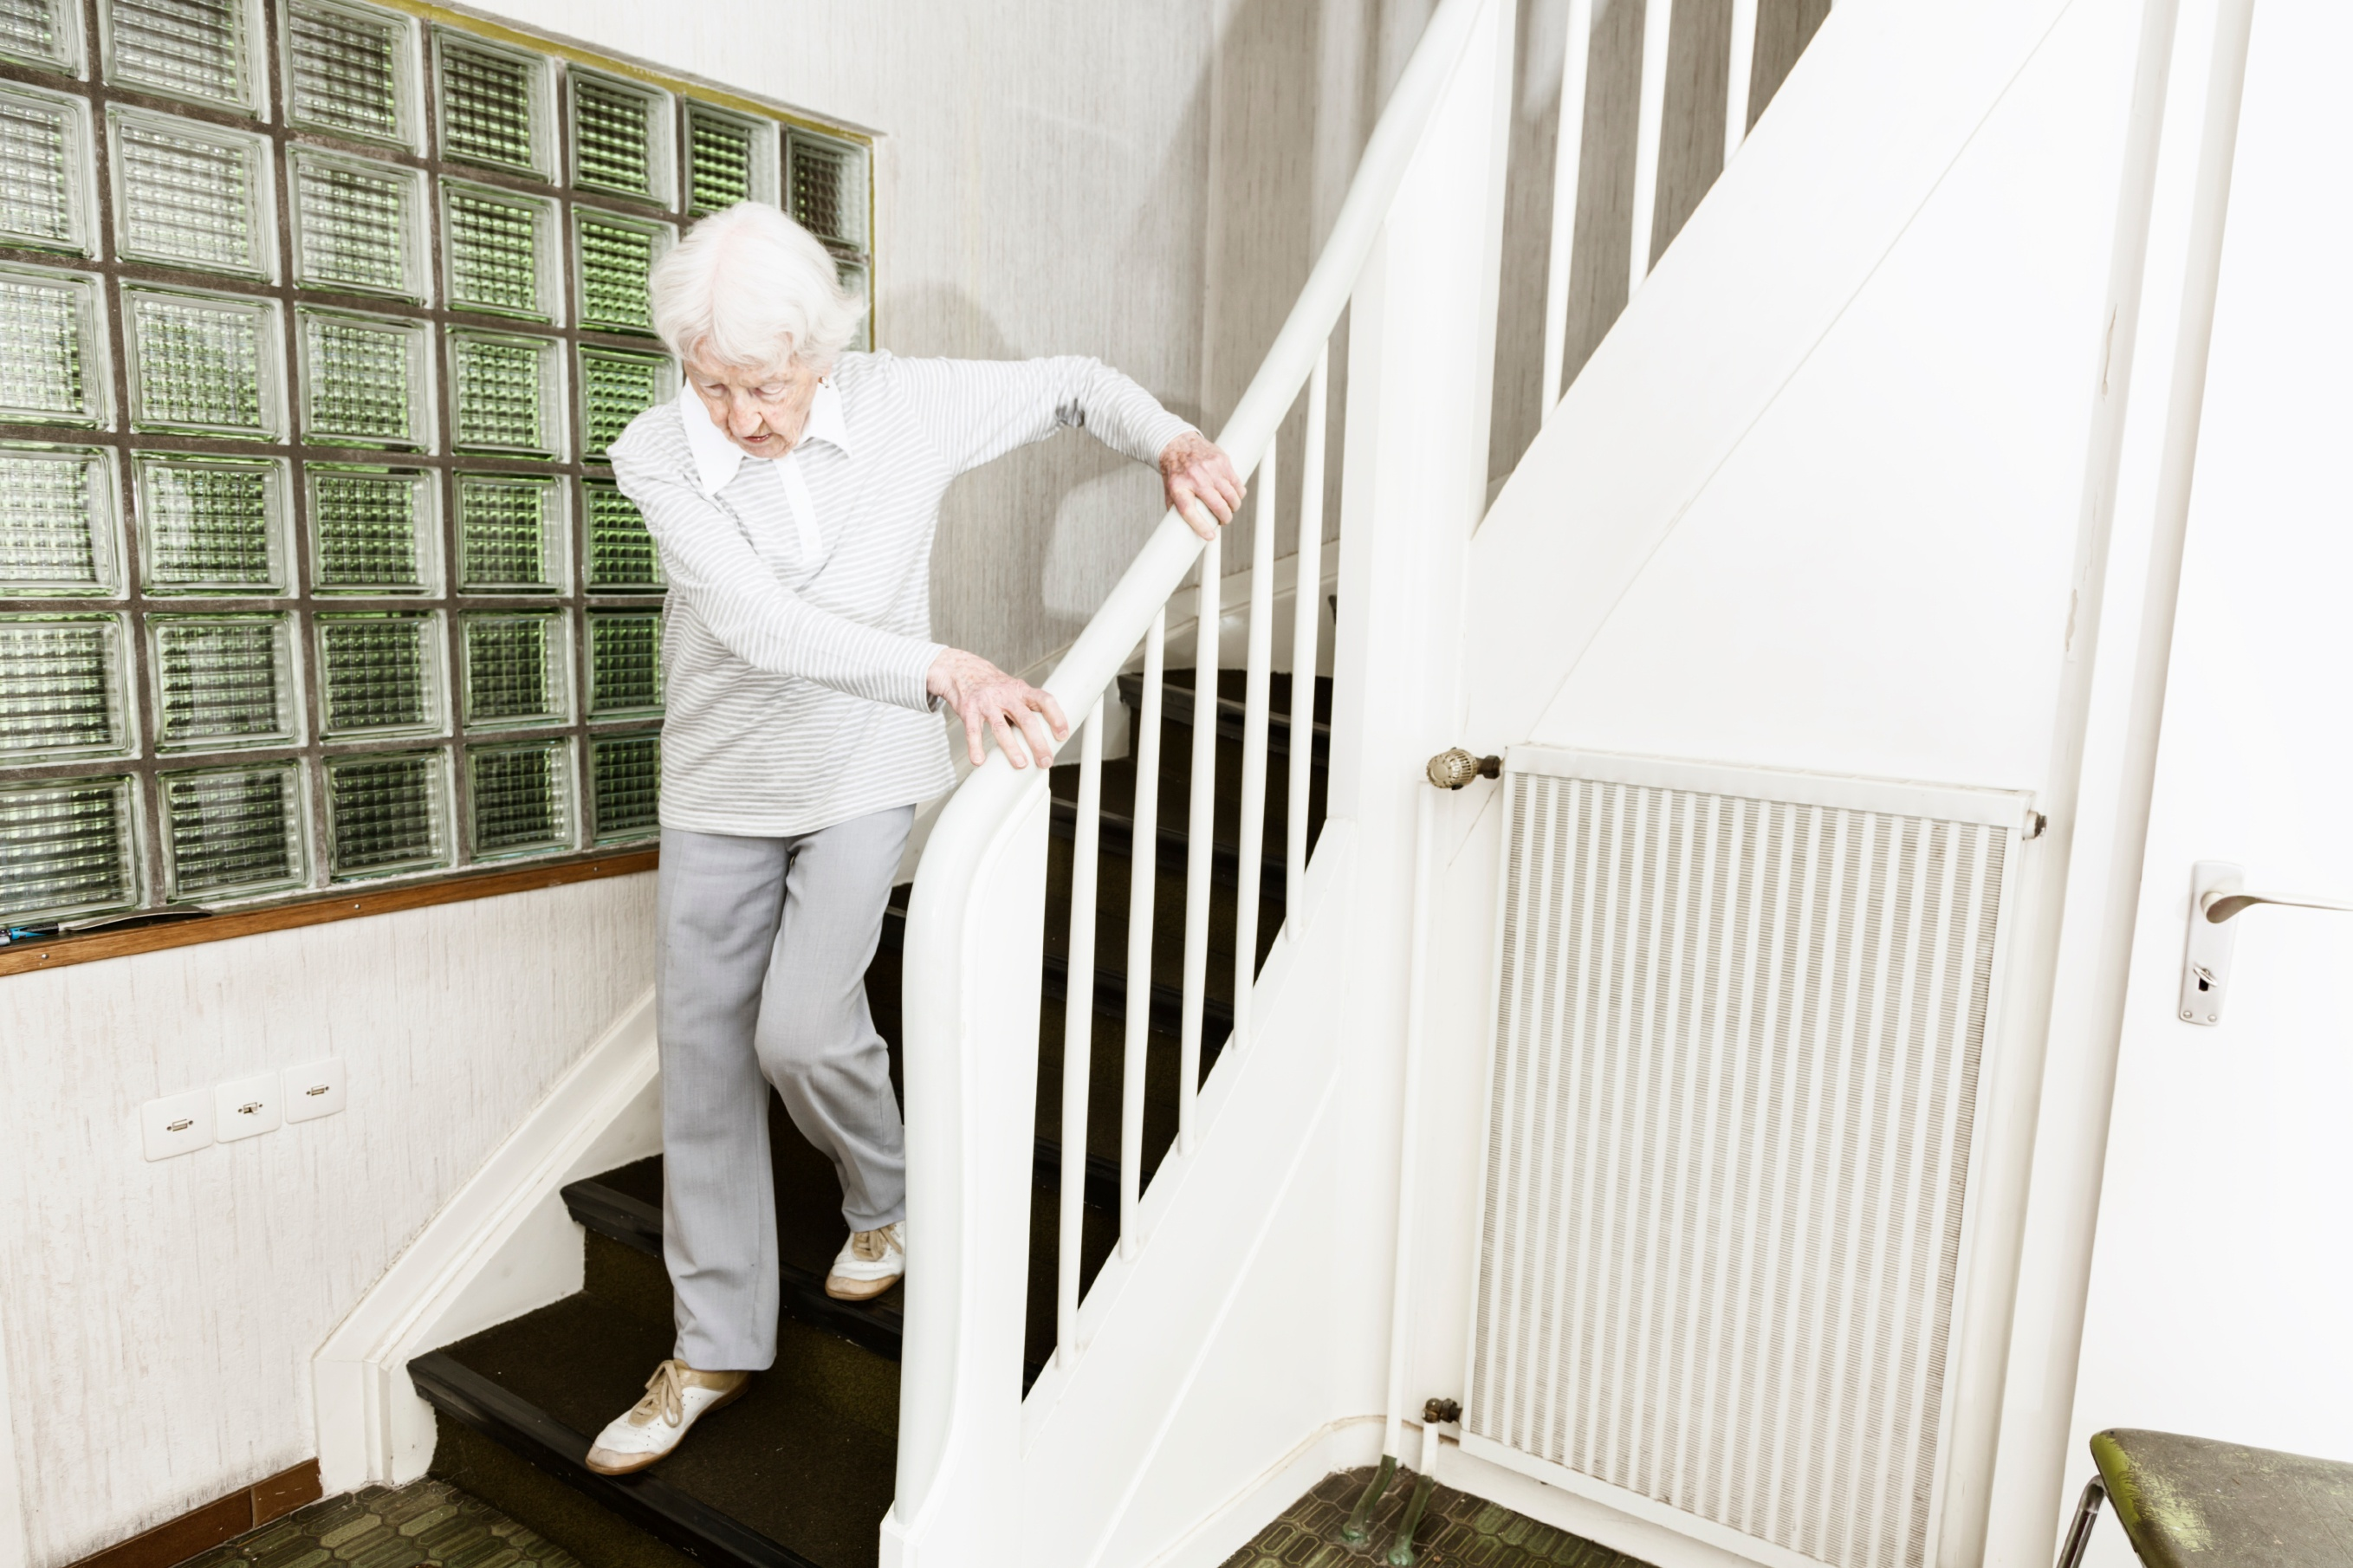 Senior_Woman_Walking_Down_Stairs.jpg